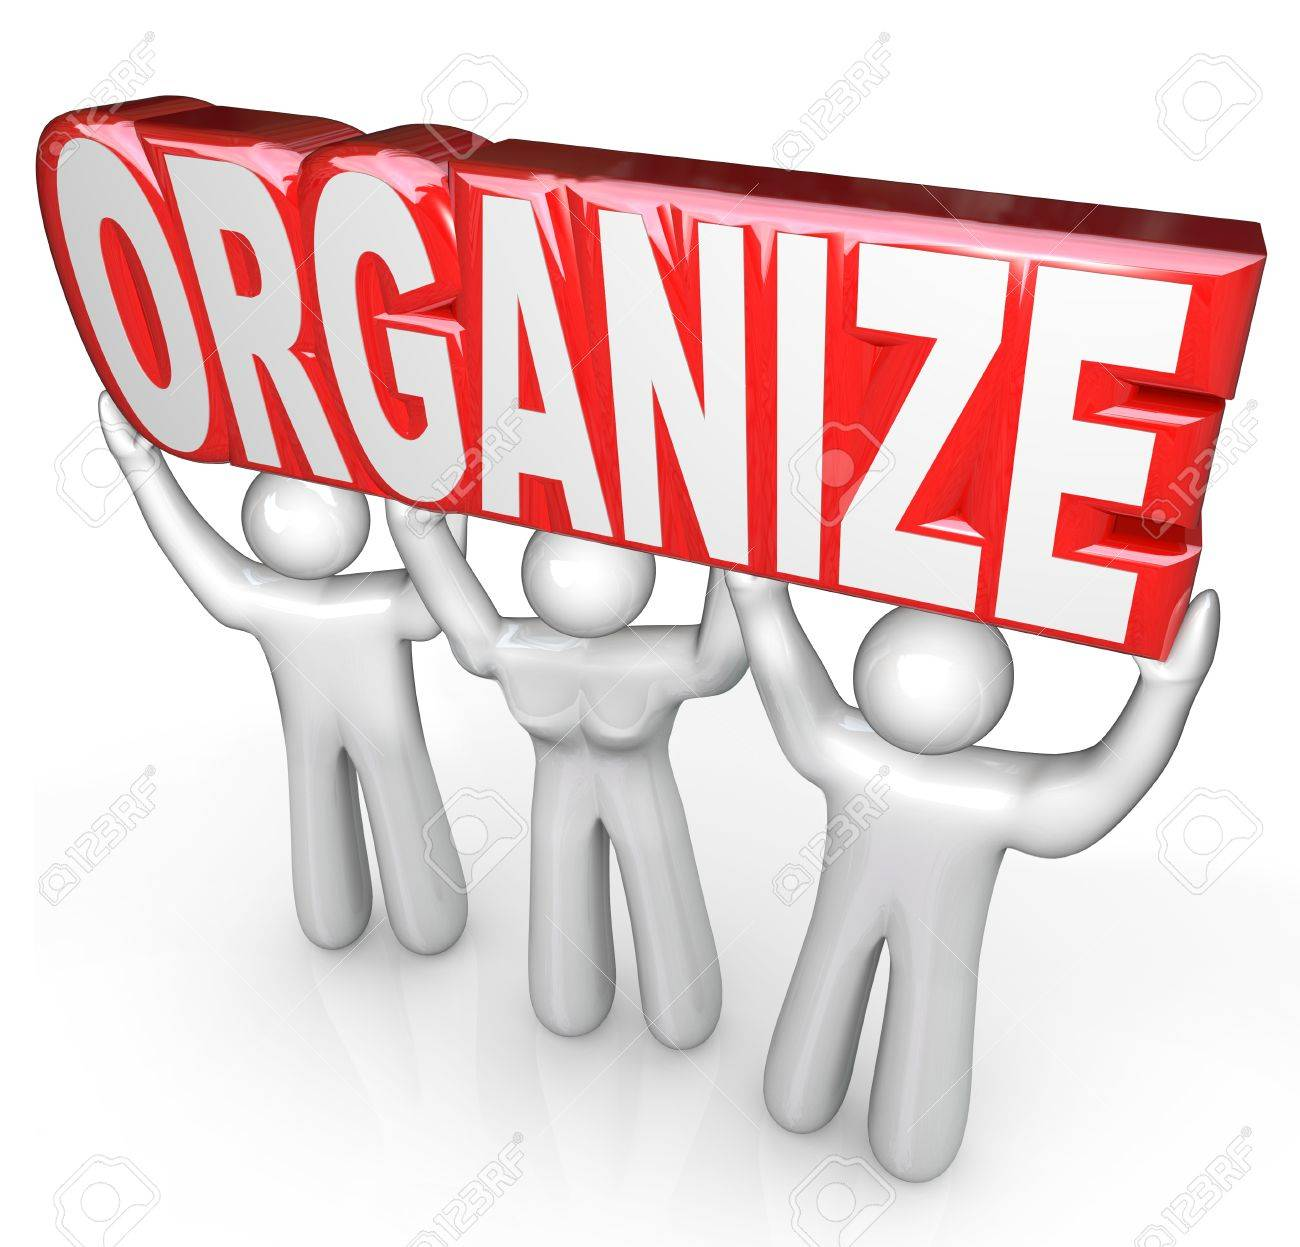 A team of helpers or support people lift the word Organize to help you get coordinated and organized in business or in life Stock Photo - 15252754